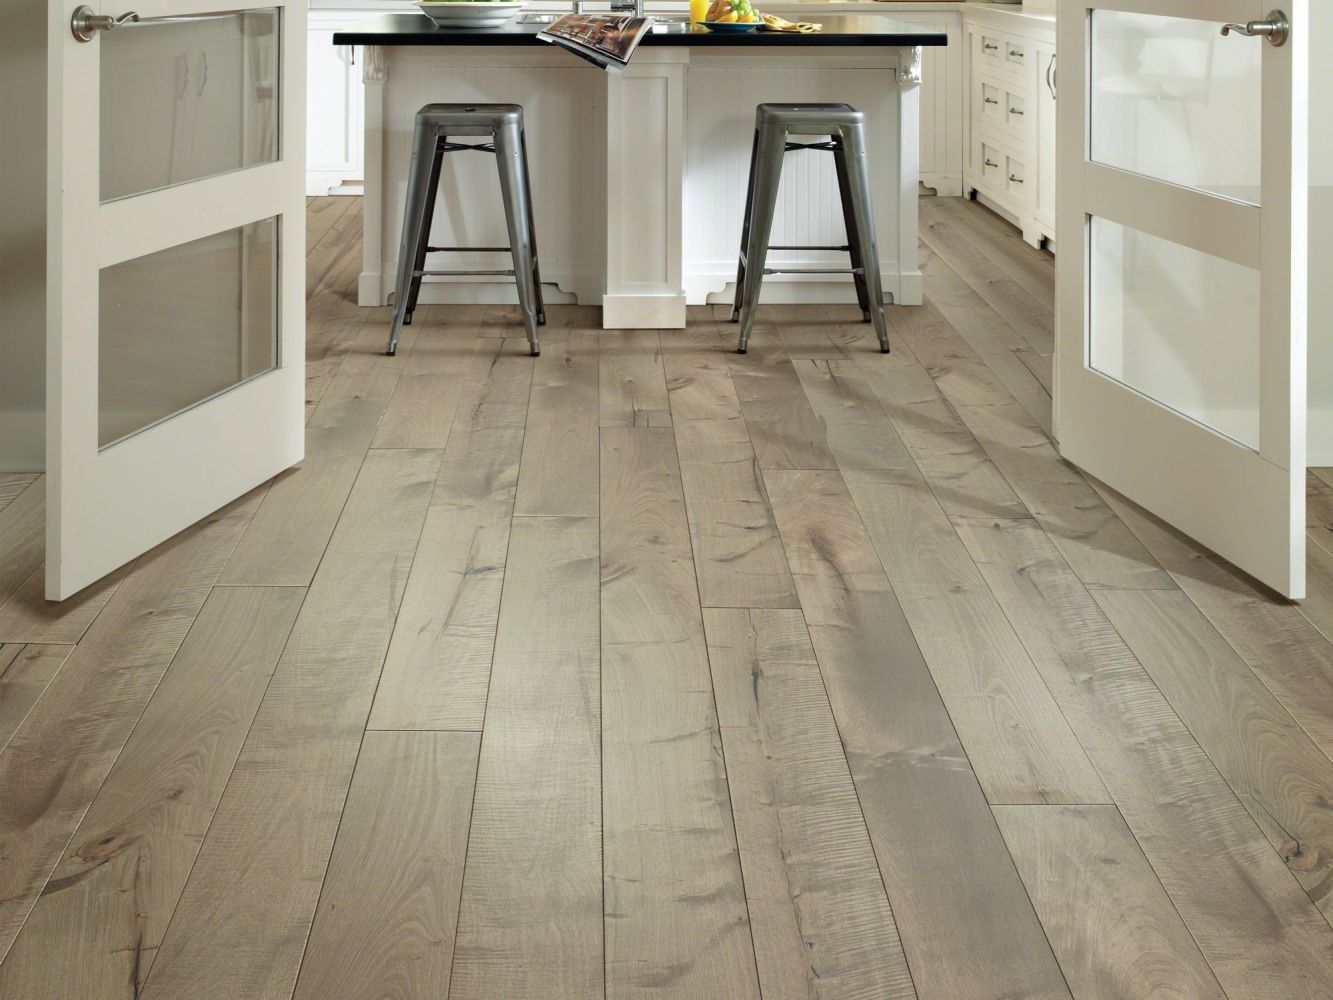 Shaw Floors Repel Hardwood Inspirations Maple Vista 02024_212SA